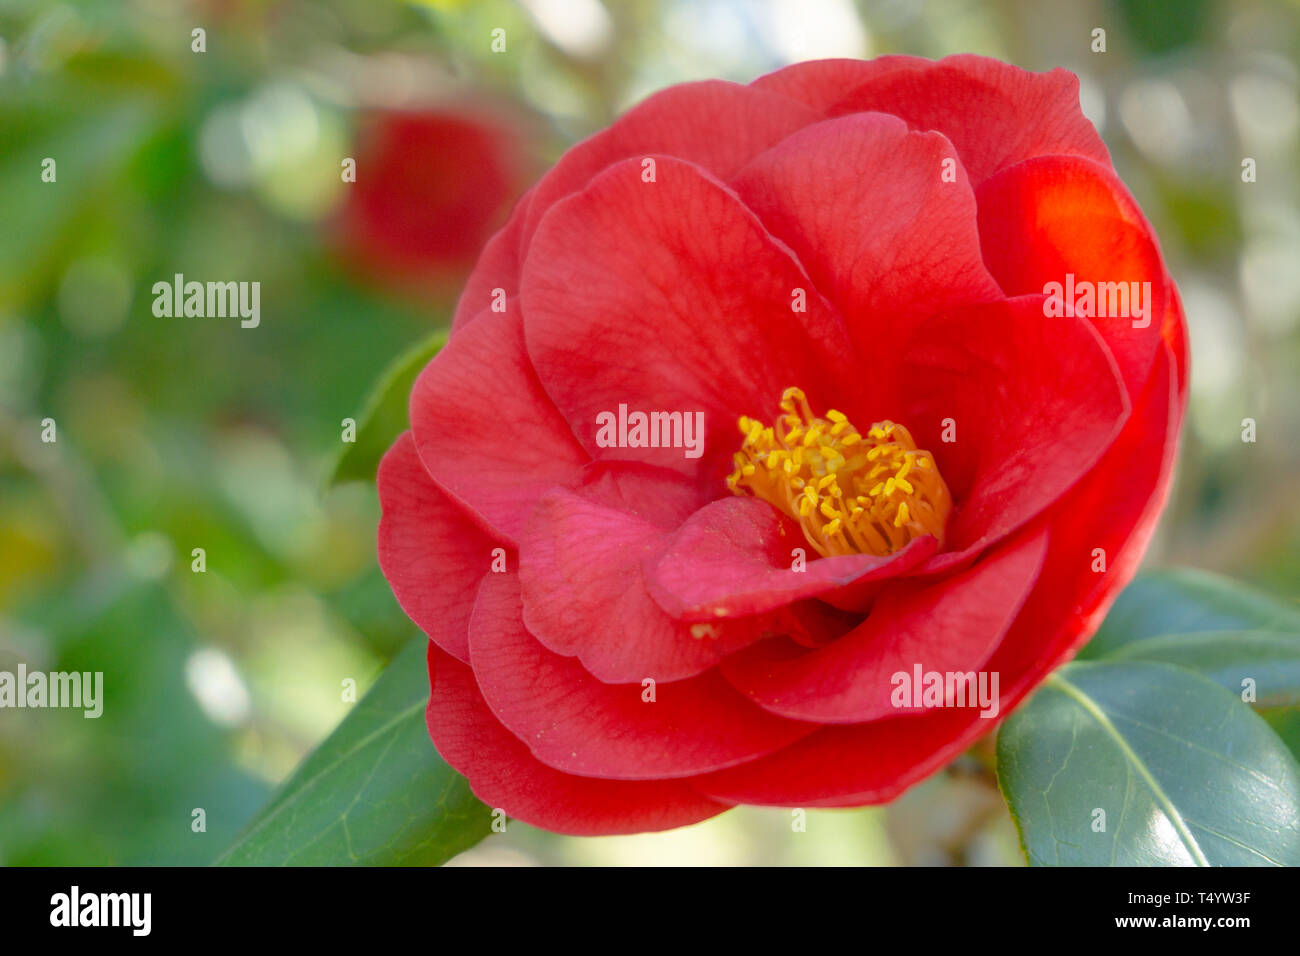 Close-up of a red Royal Velvet (Camellia japonica) Flower in Spring. View of a blossoming red Camellia Flower in April. Red Spring Flowers. Stock Photo